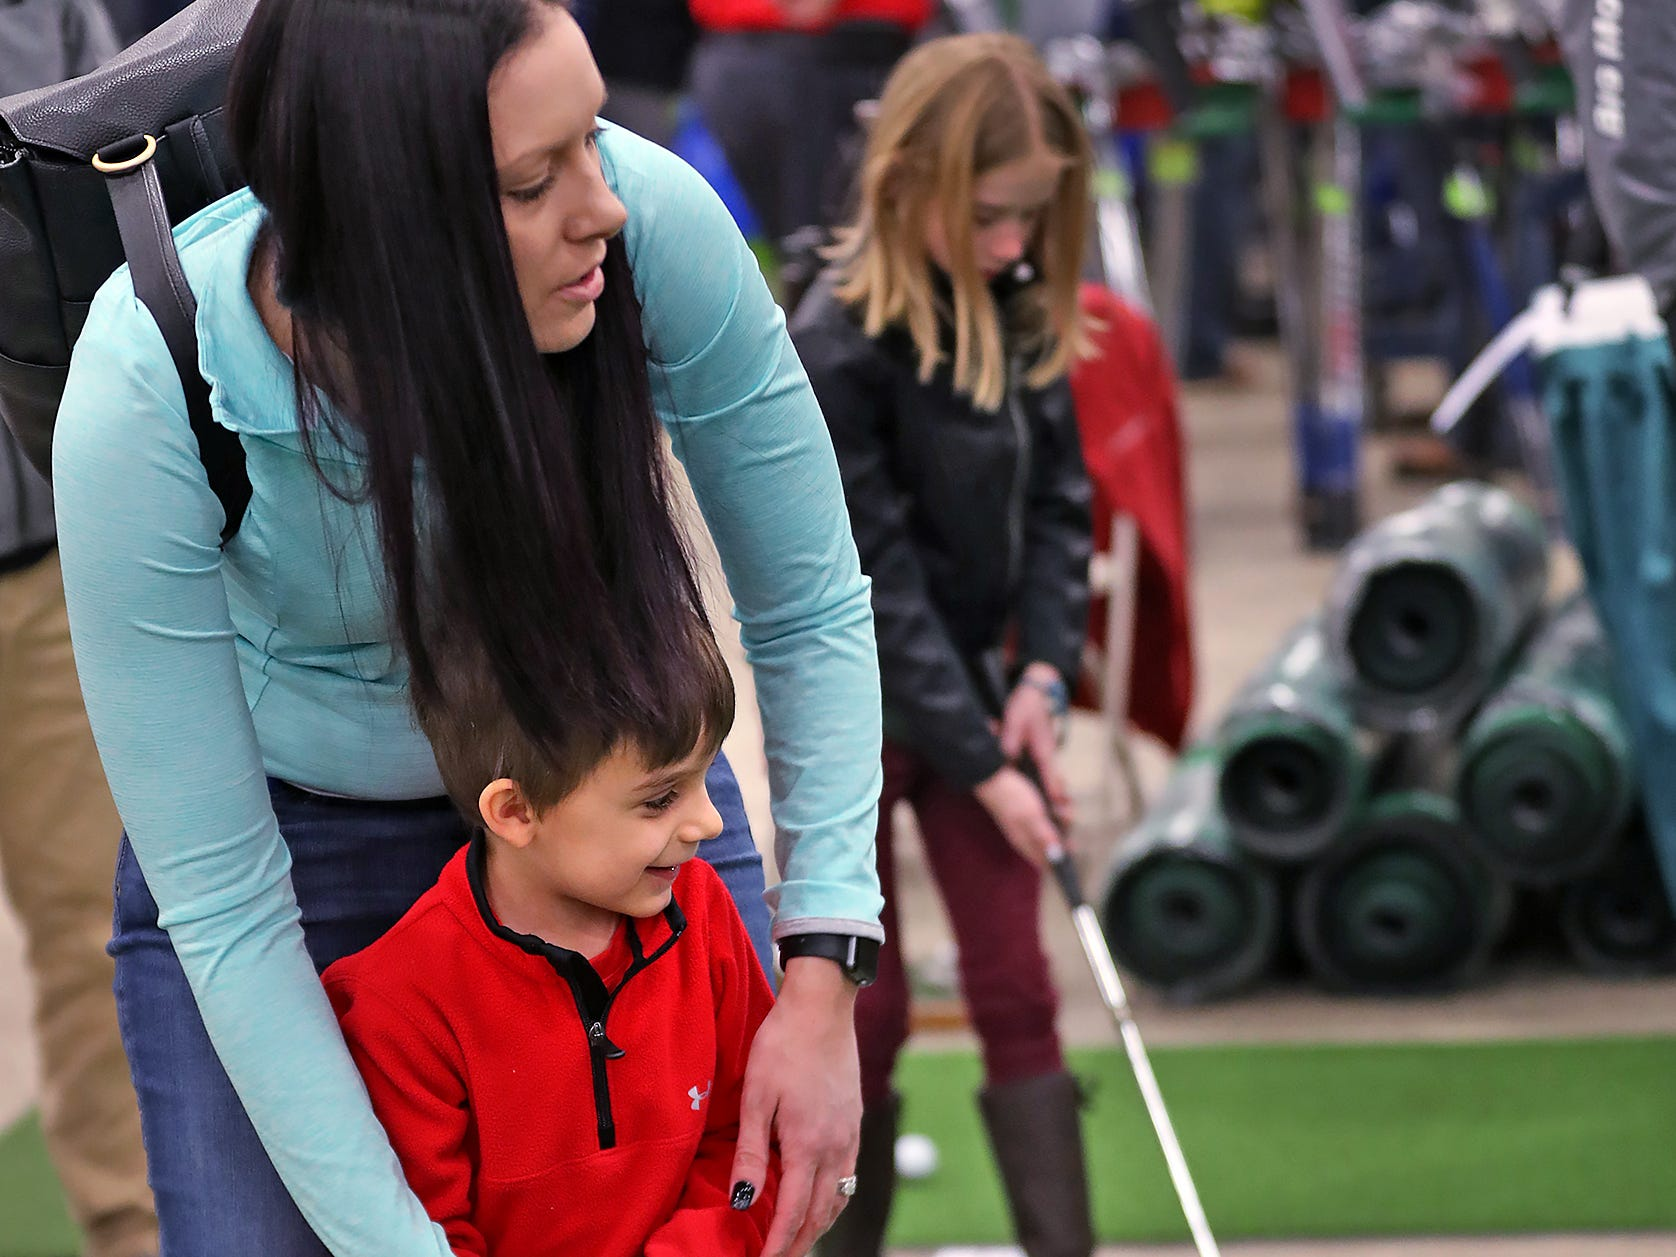 Abby Shafer helps her son Brody Shafer putt at the Big Moss Golf booth during the Indy Golf Expo at the Indiana State Fairgrounds, Sunday, Jan. 20, 2019.